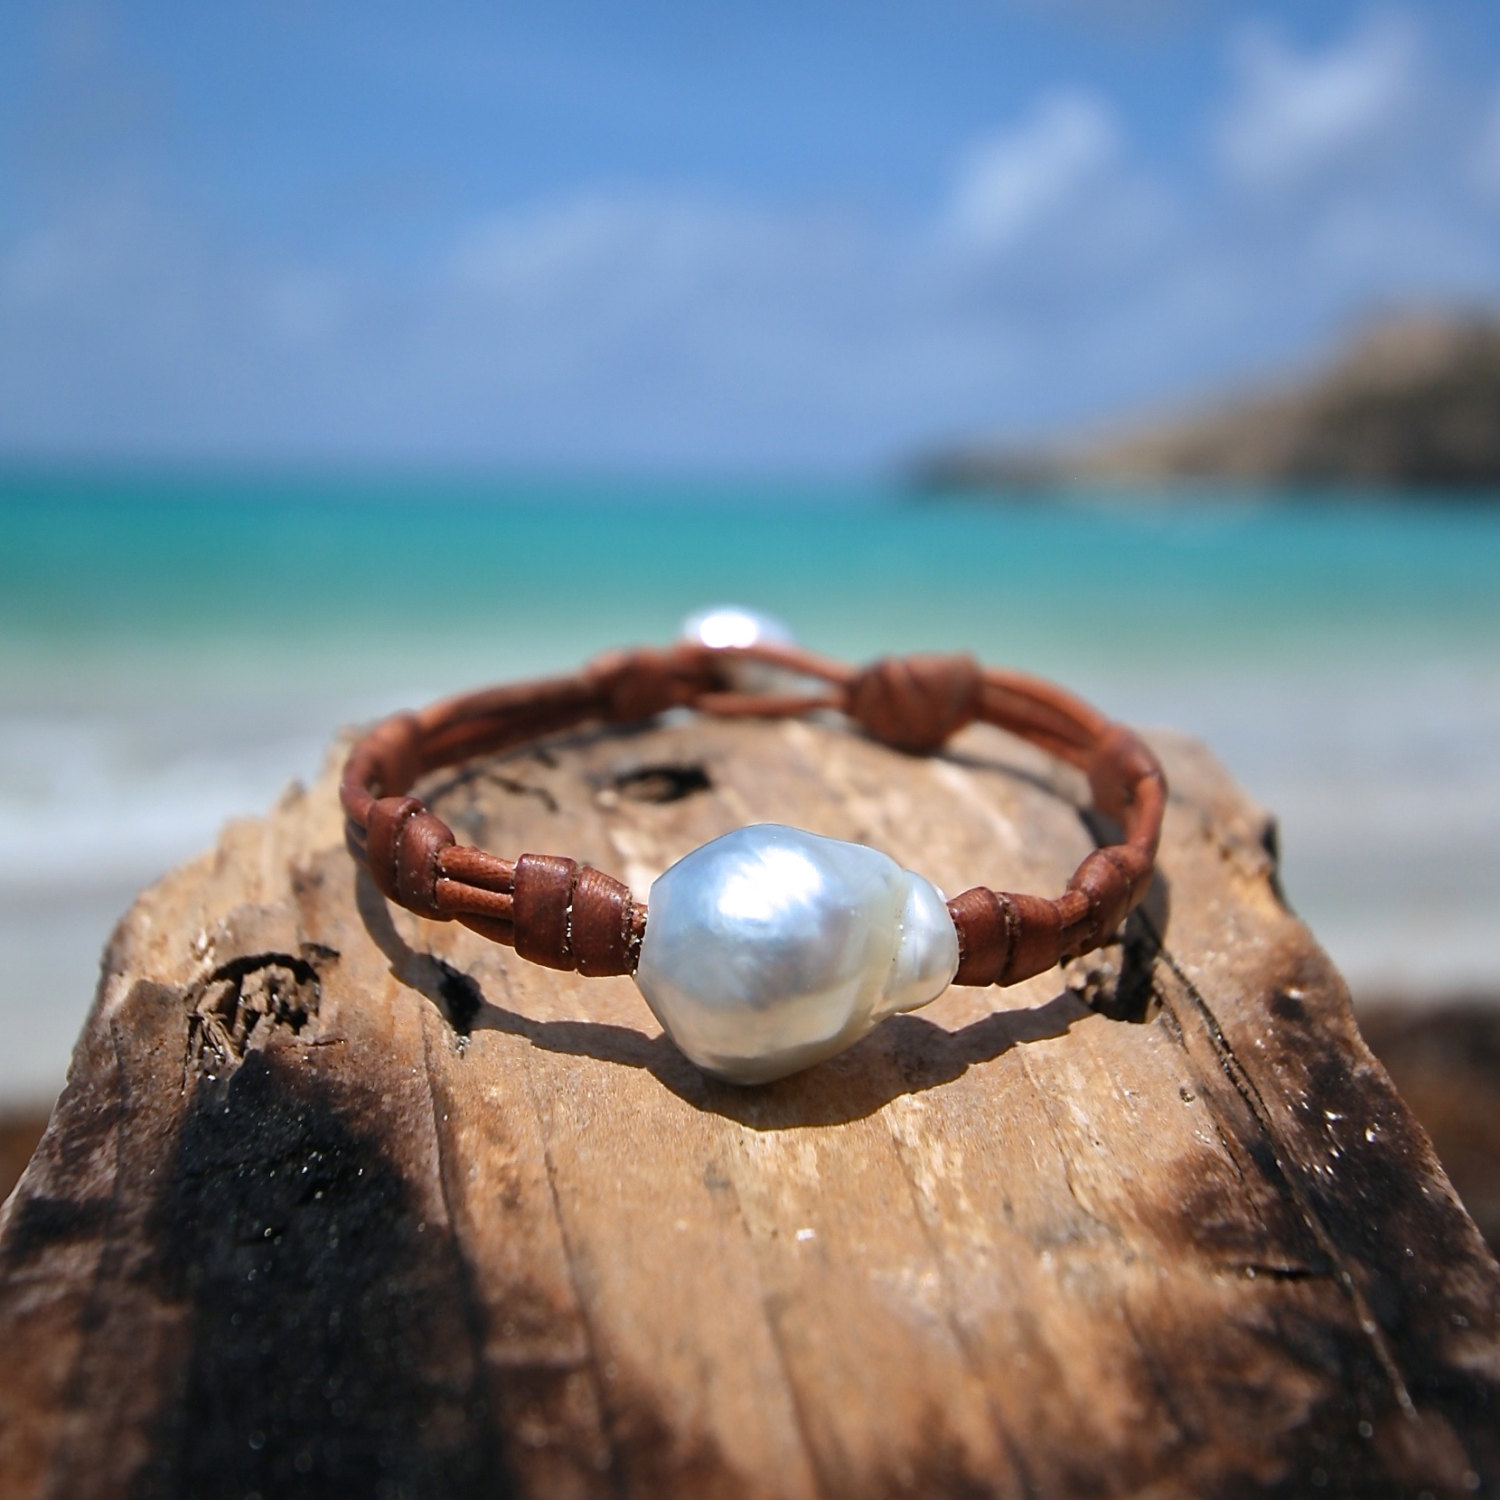 HUGE silvery / grey south sea pearl strung on leather, St Barts island seaside jewelry, leathered pearl, coastal beach style, bohemian chic